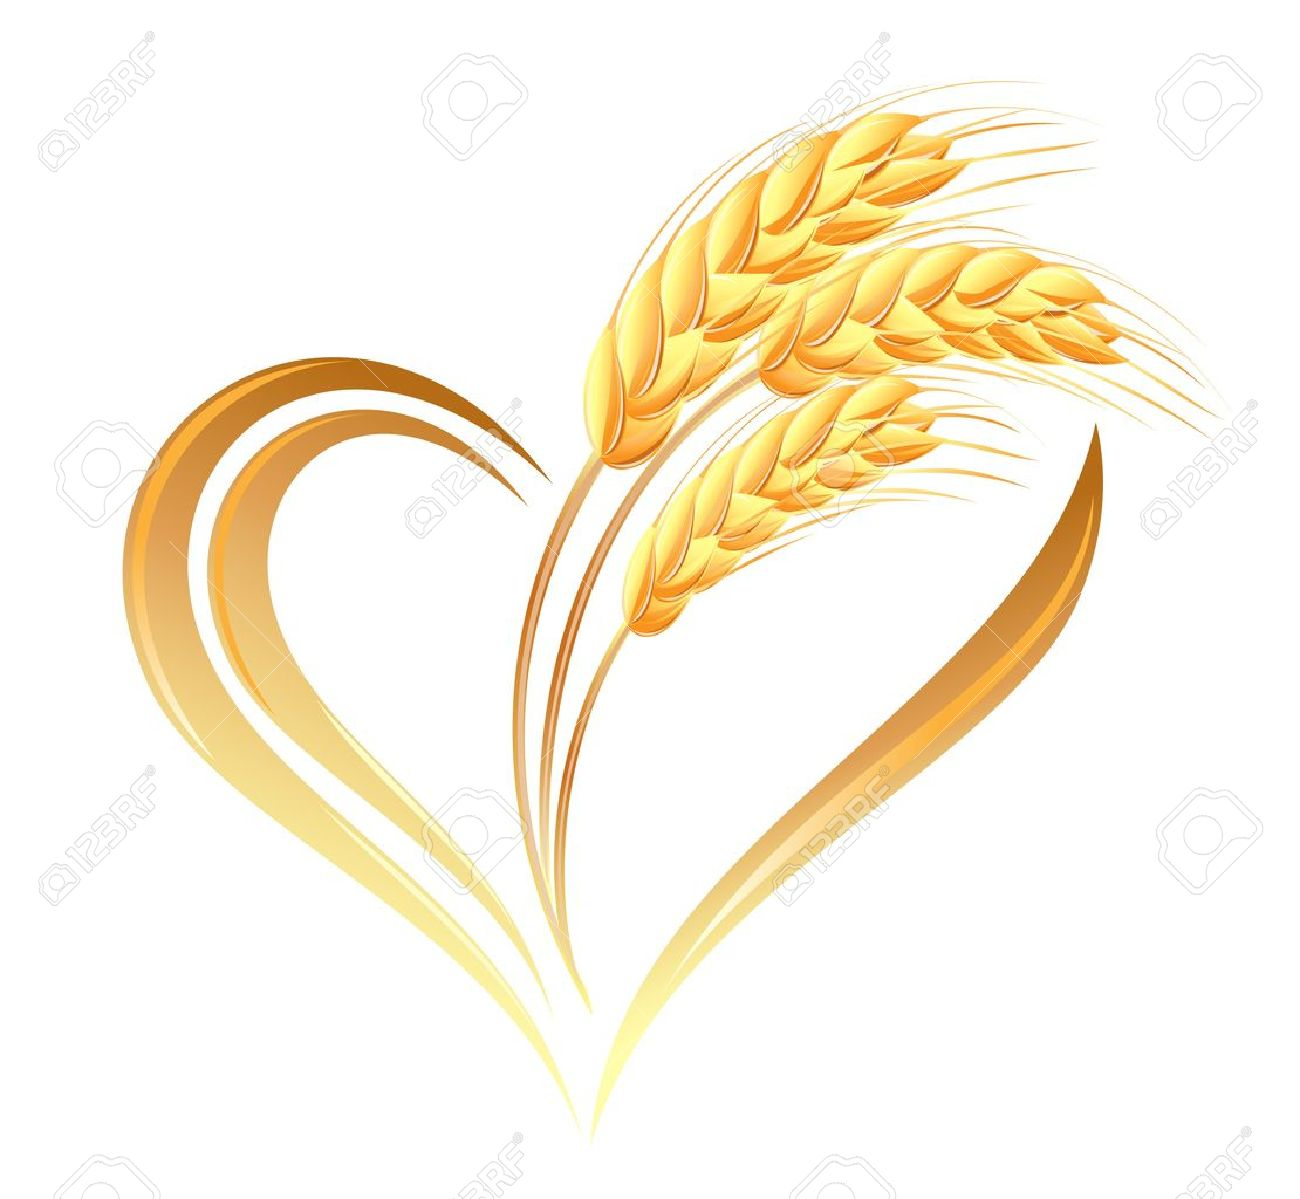 Abstract wheat ears icon with heart element Stock Vector - 15251903